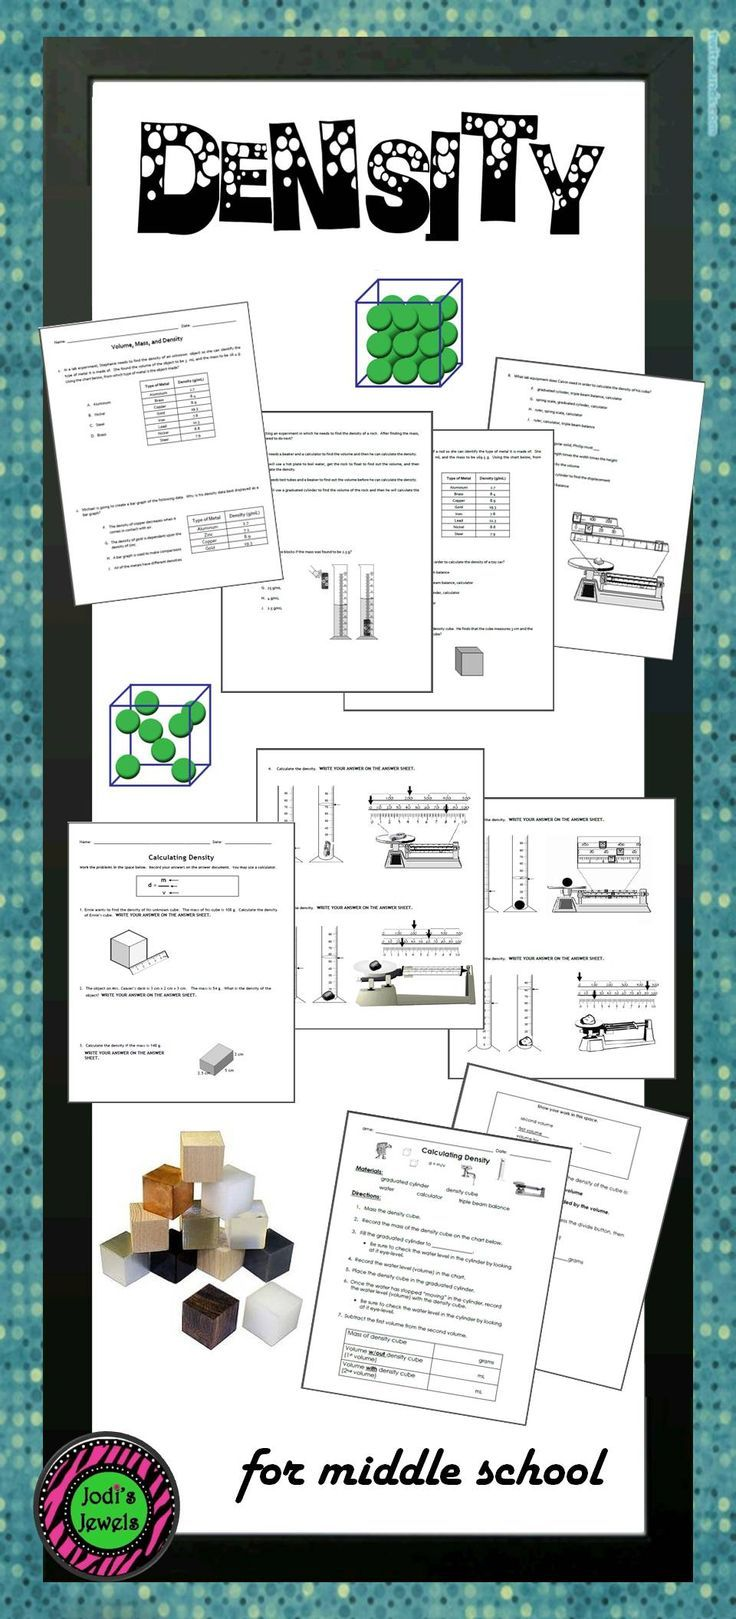 hight resolution of Middle School density worksheets for grades 5 - 7. Lab sheets and worksheets.  Visit Jodi's Jewels today…   Density worksheet